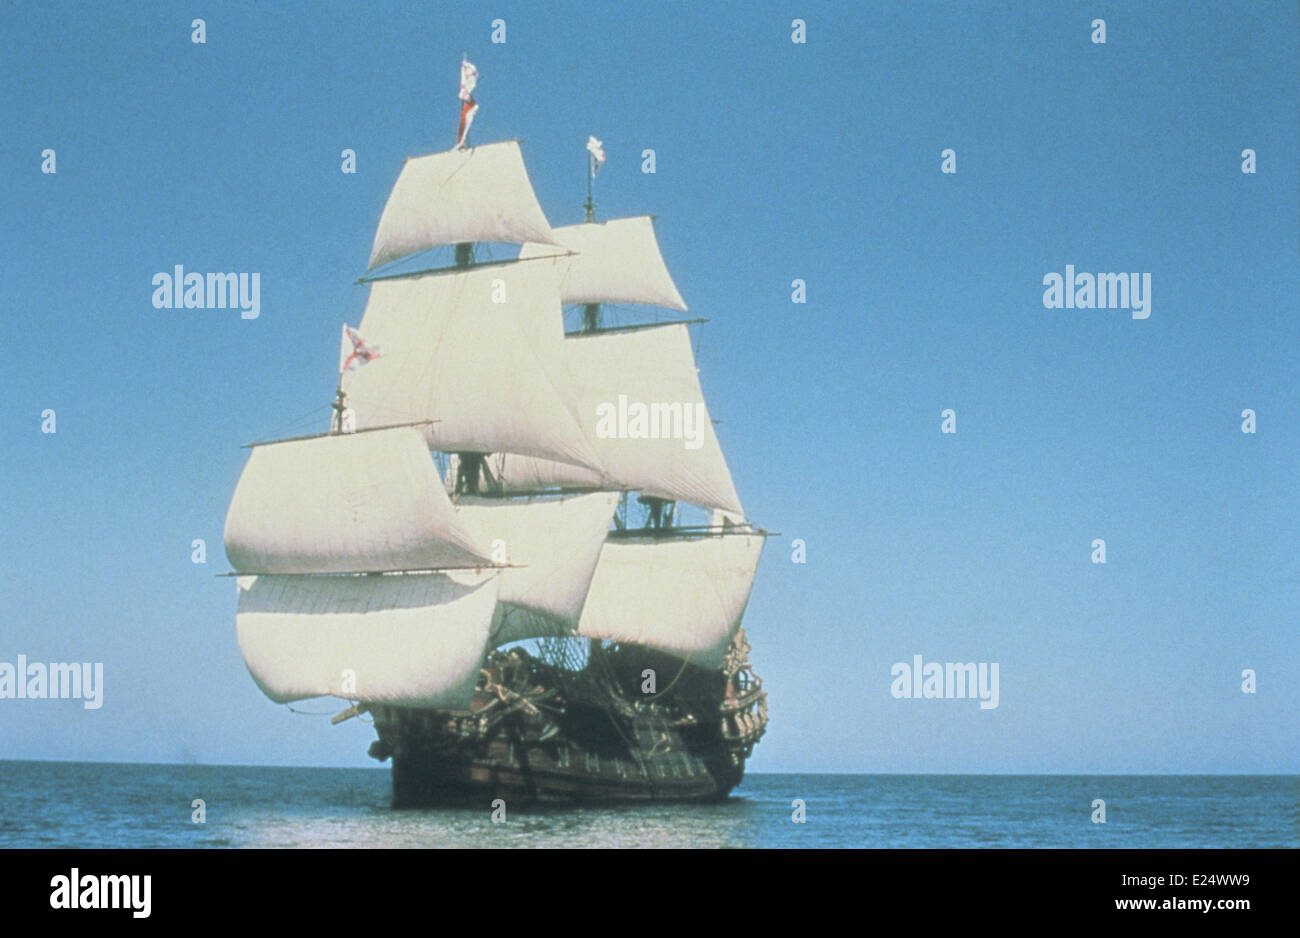 Movie still from  ''Pirates'' (1986). Directed by Roman Polanski.  Featuring: Pirate Ship,Gallion - Stock Image